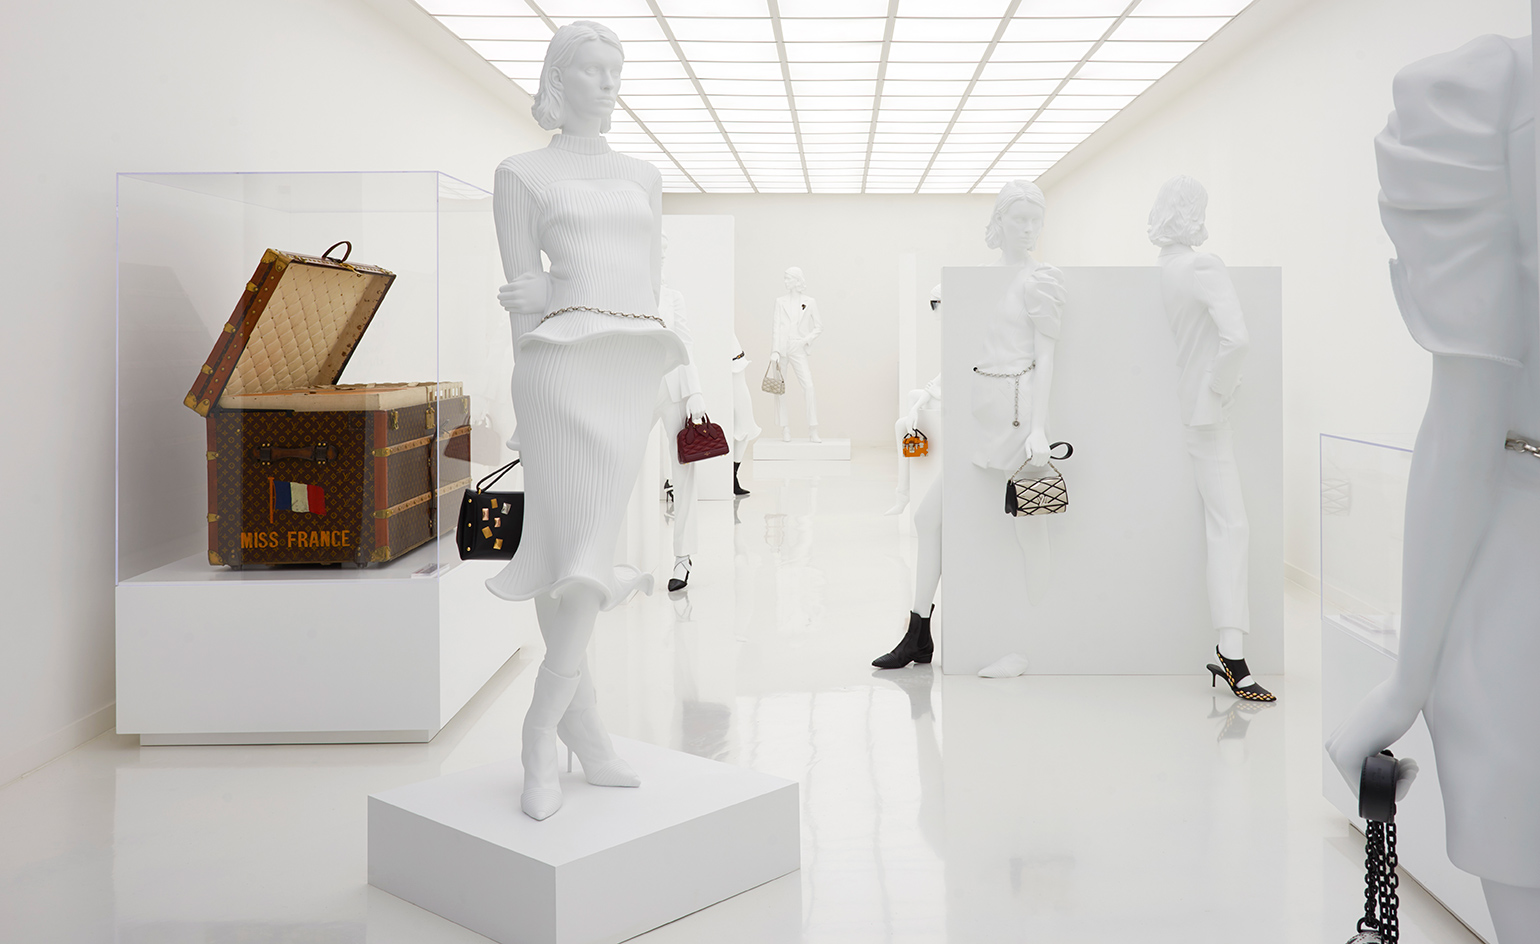 A fashion journey: Louis Vuitton unveils Series 3 exhibition in London